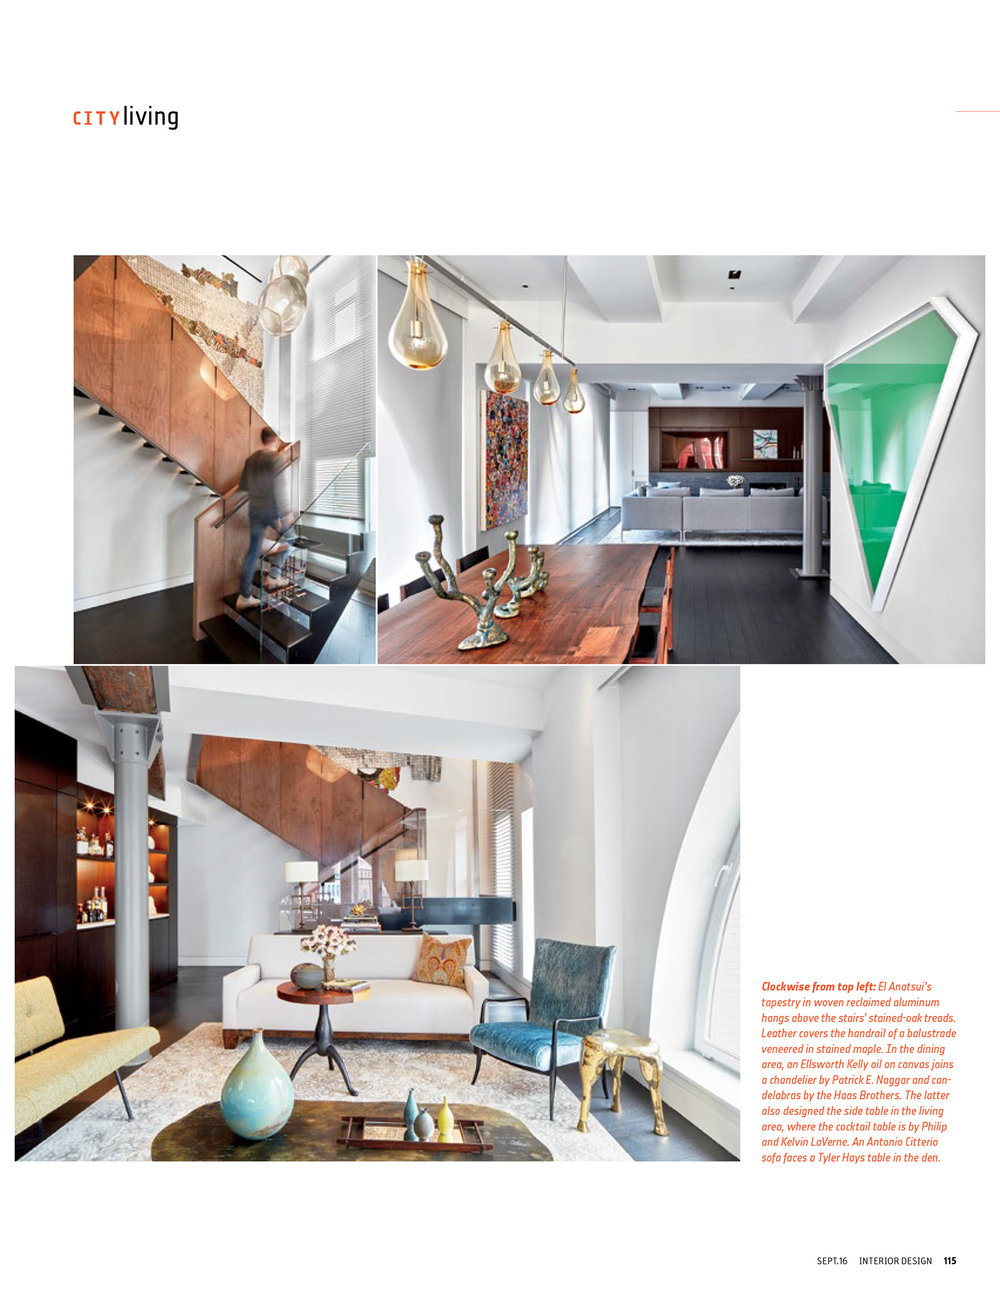 Interior-Design_161-Duane-St_Oct-16_Page-2B.jpg